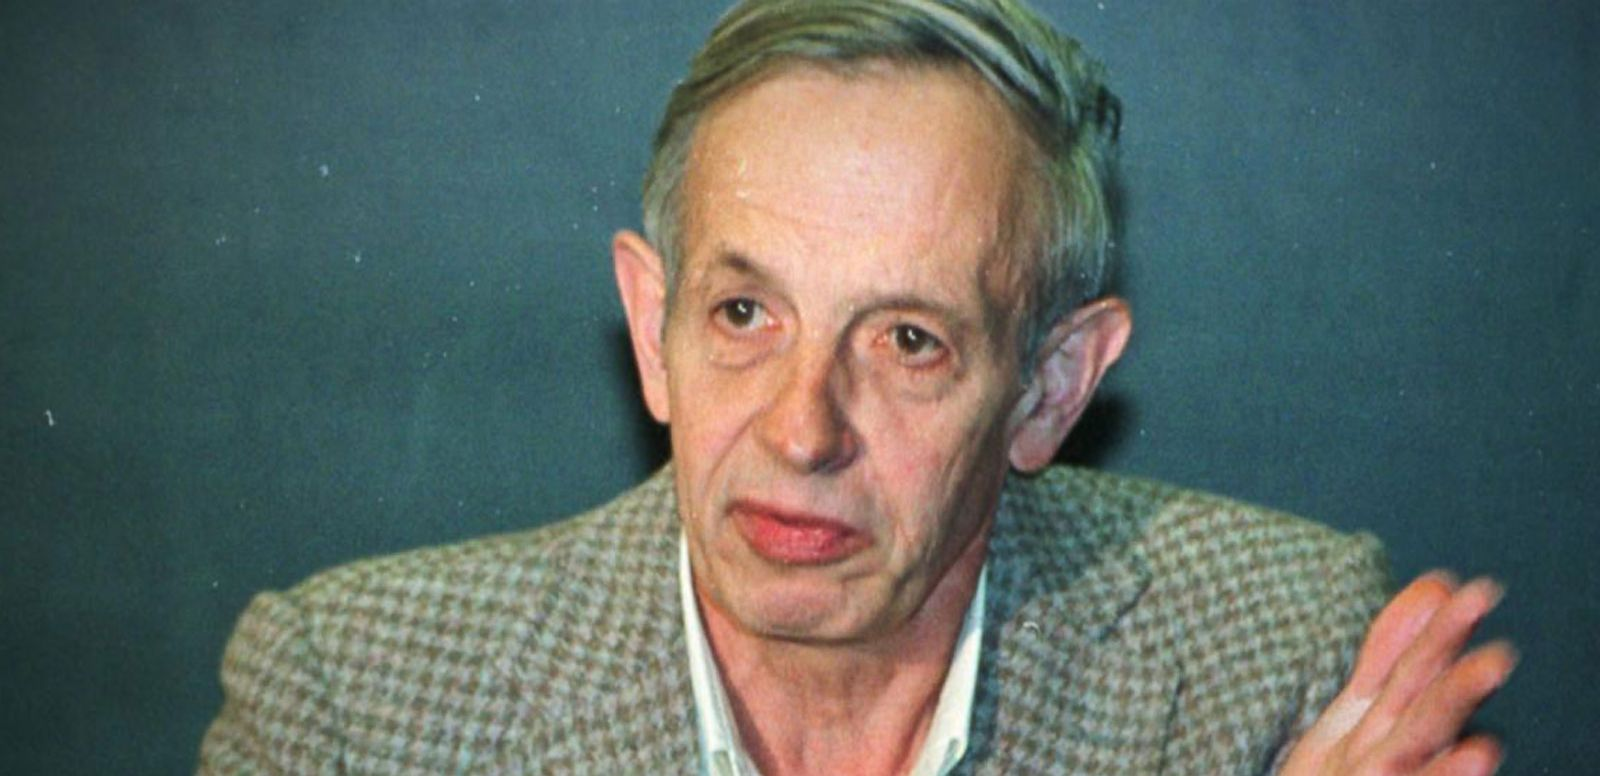 VIDEO: John Nash, Wife Killed in Taxi Crash